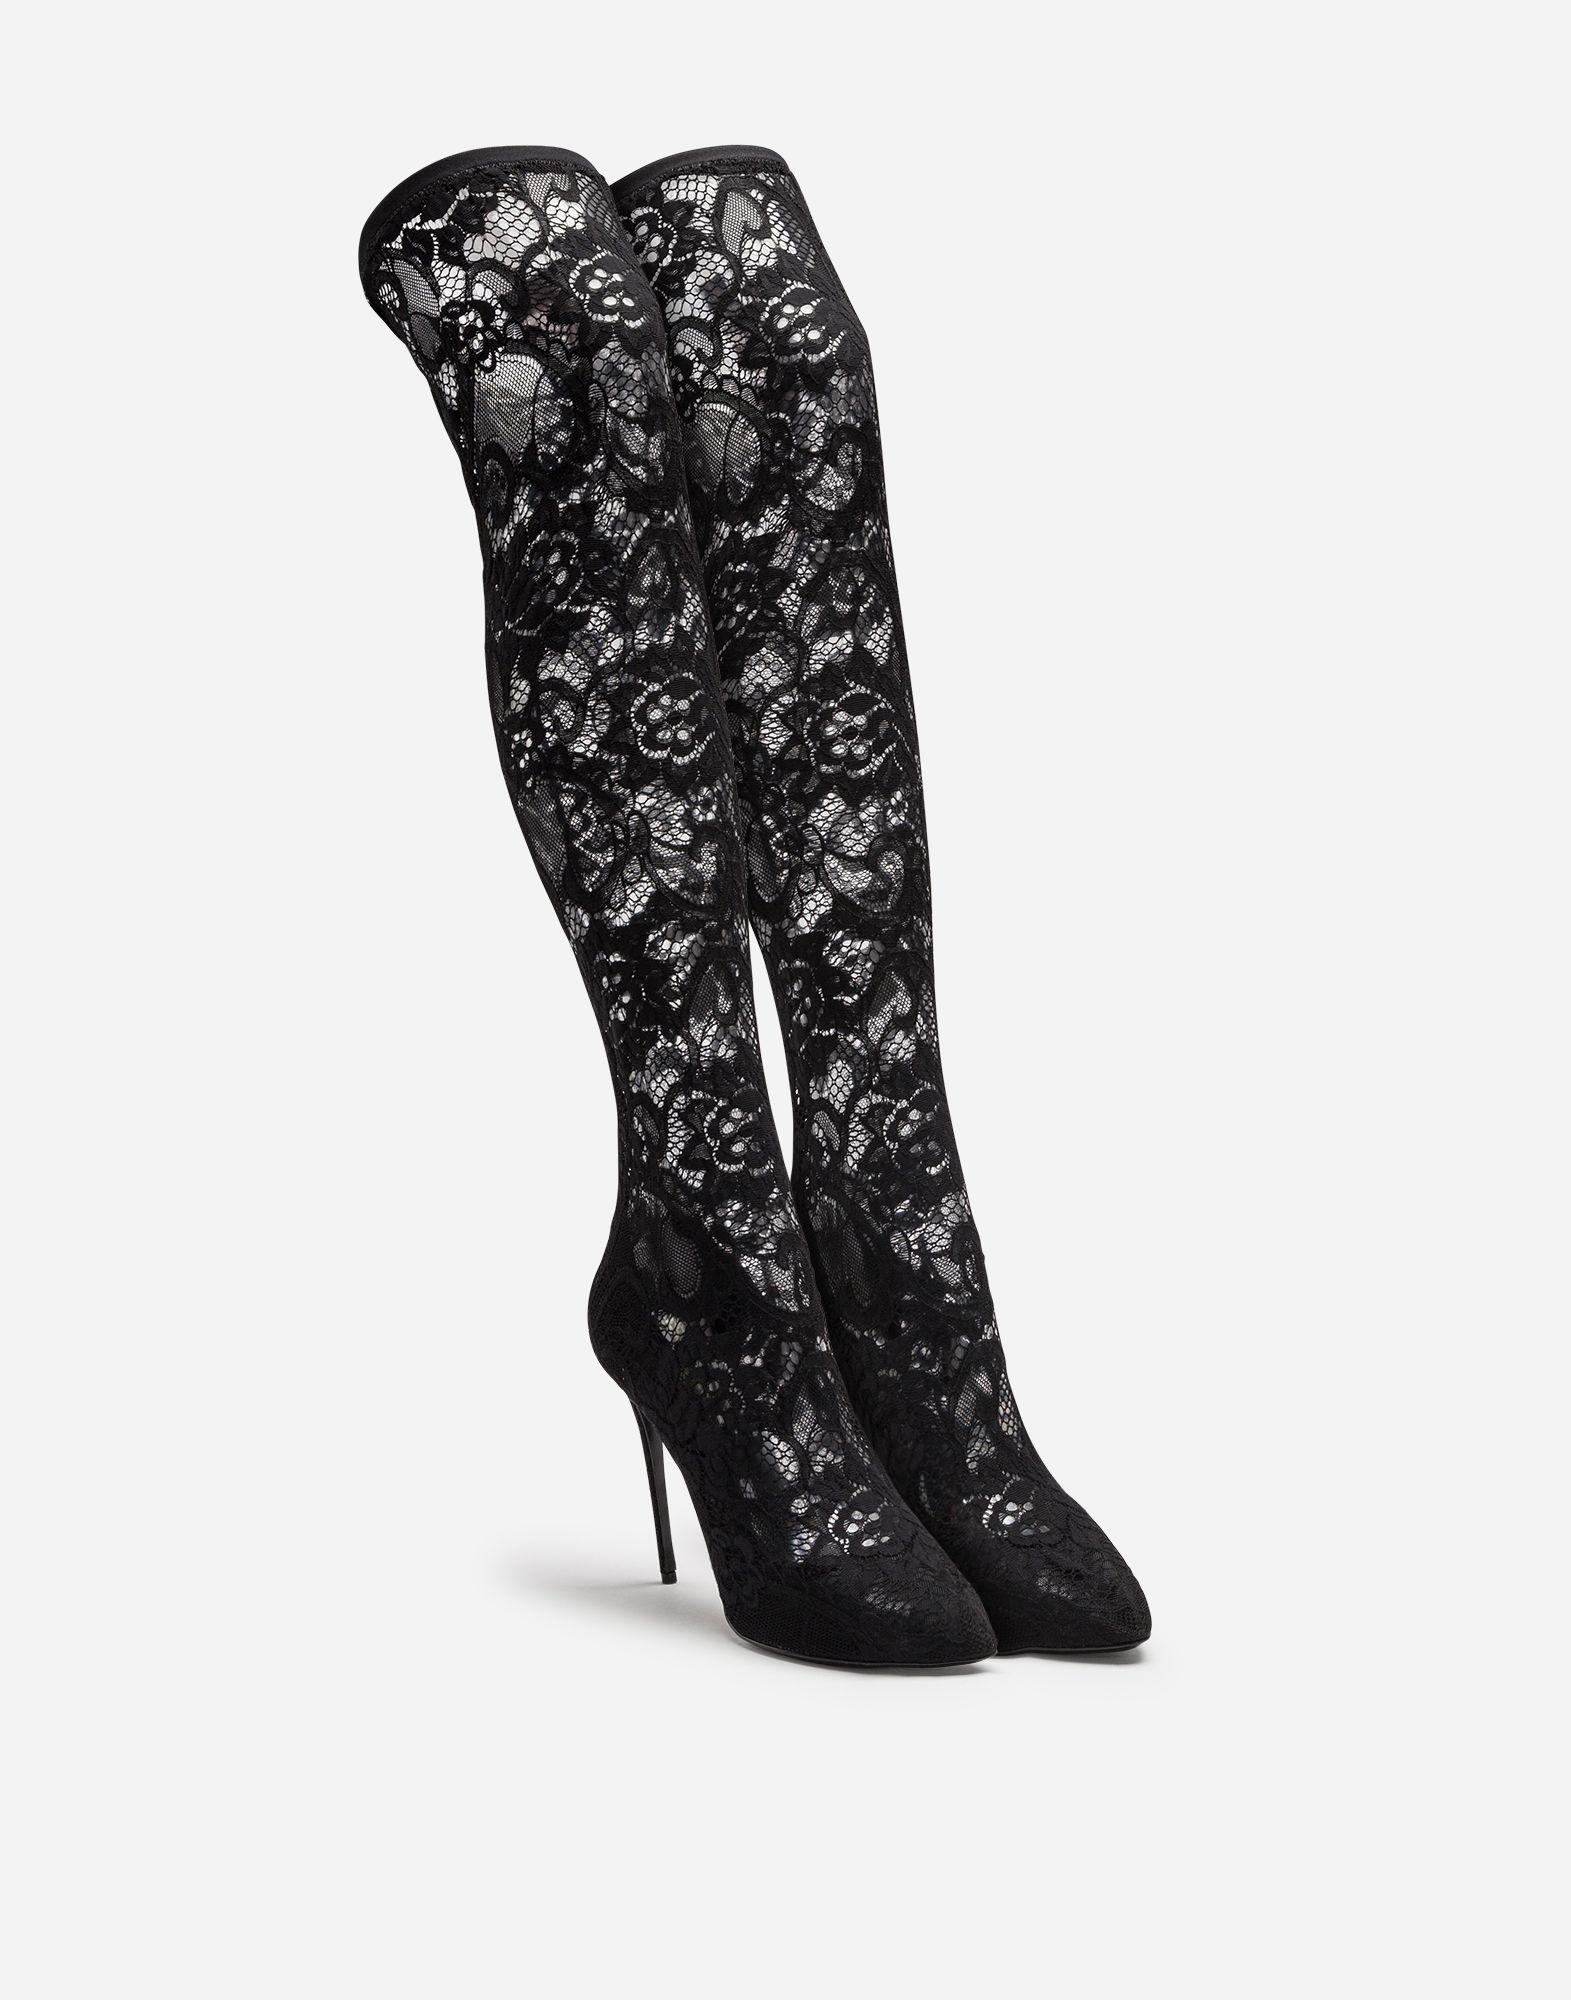 5055eb13dc3 Lyst - Dolce   Gabbana Stretch Lace And Gros Grain Boots in Black - Save 17%